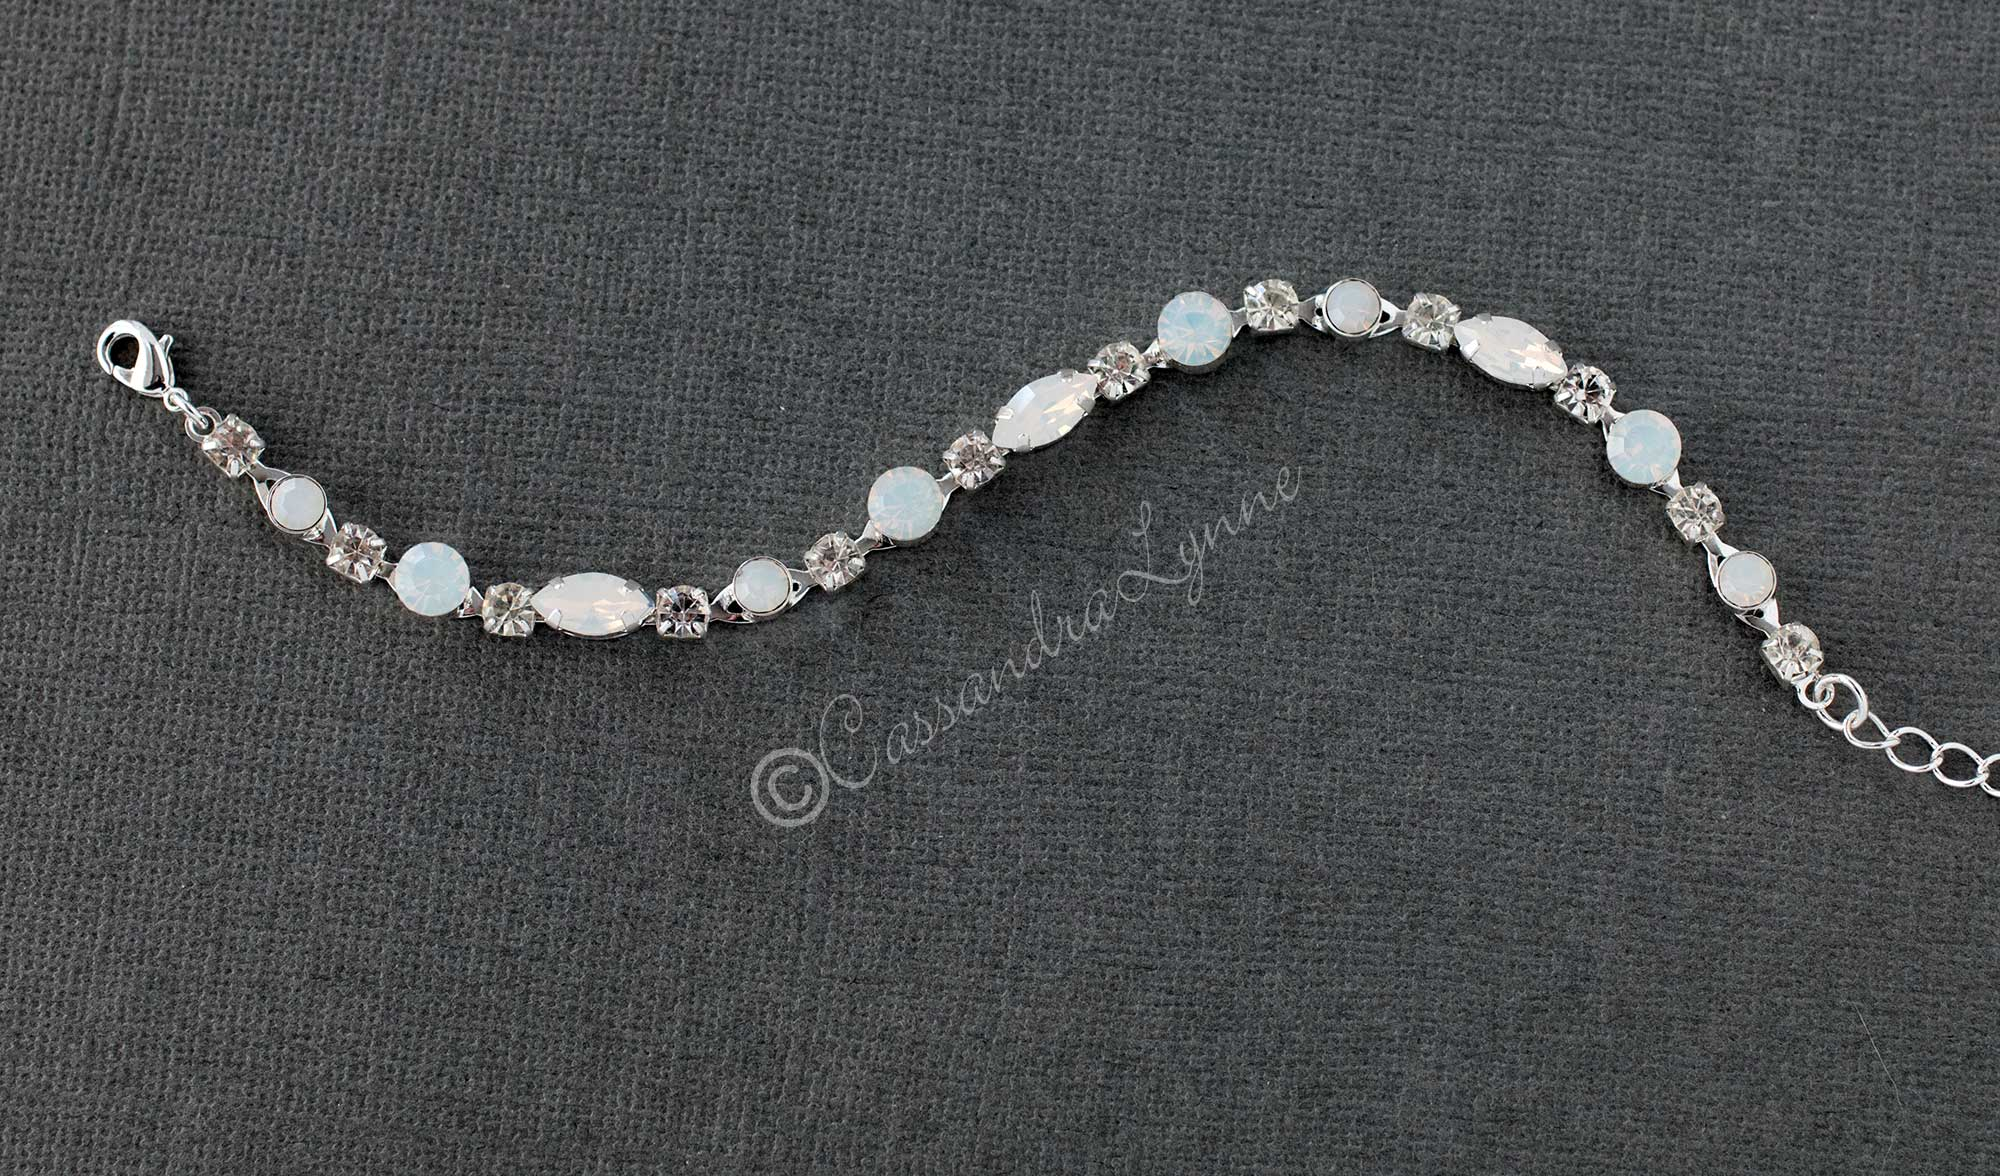 Crystal Bracelet with White Opal Accents